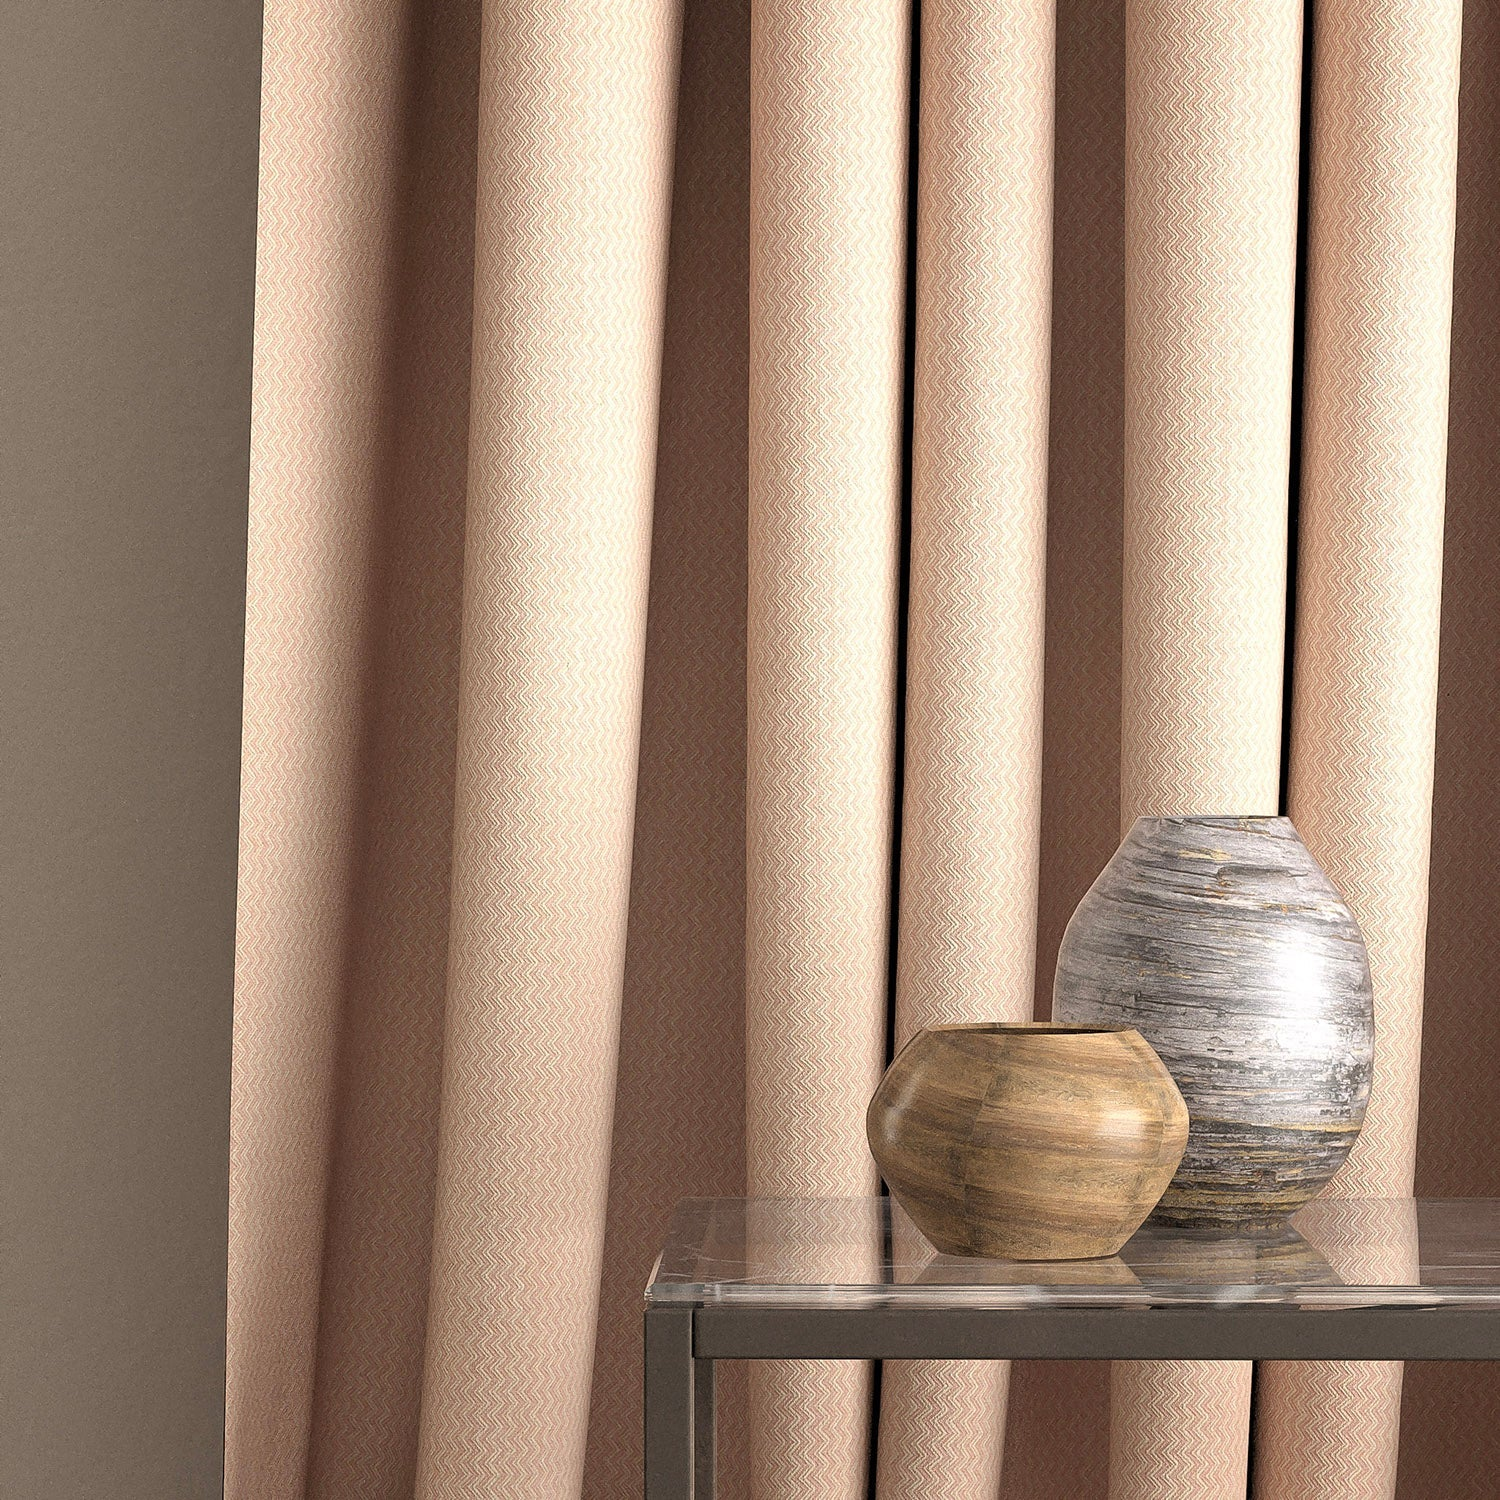 Curtain in a light pink furnishing fabric with zig zag weave design